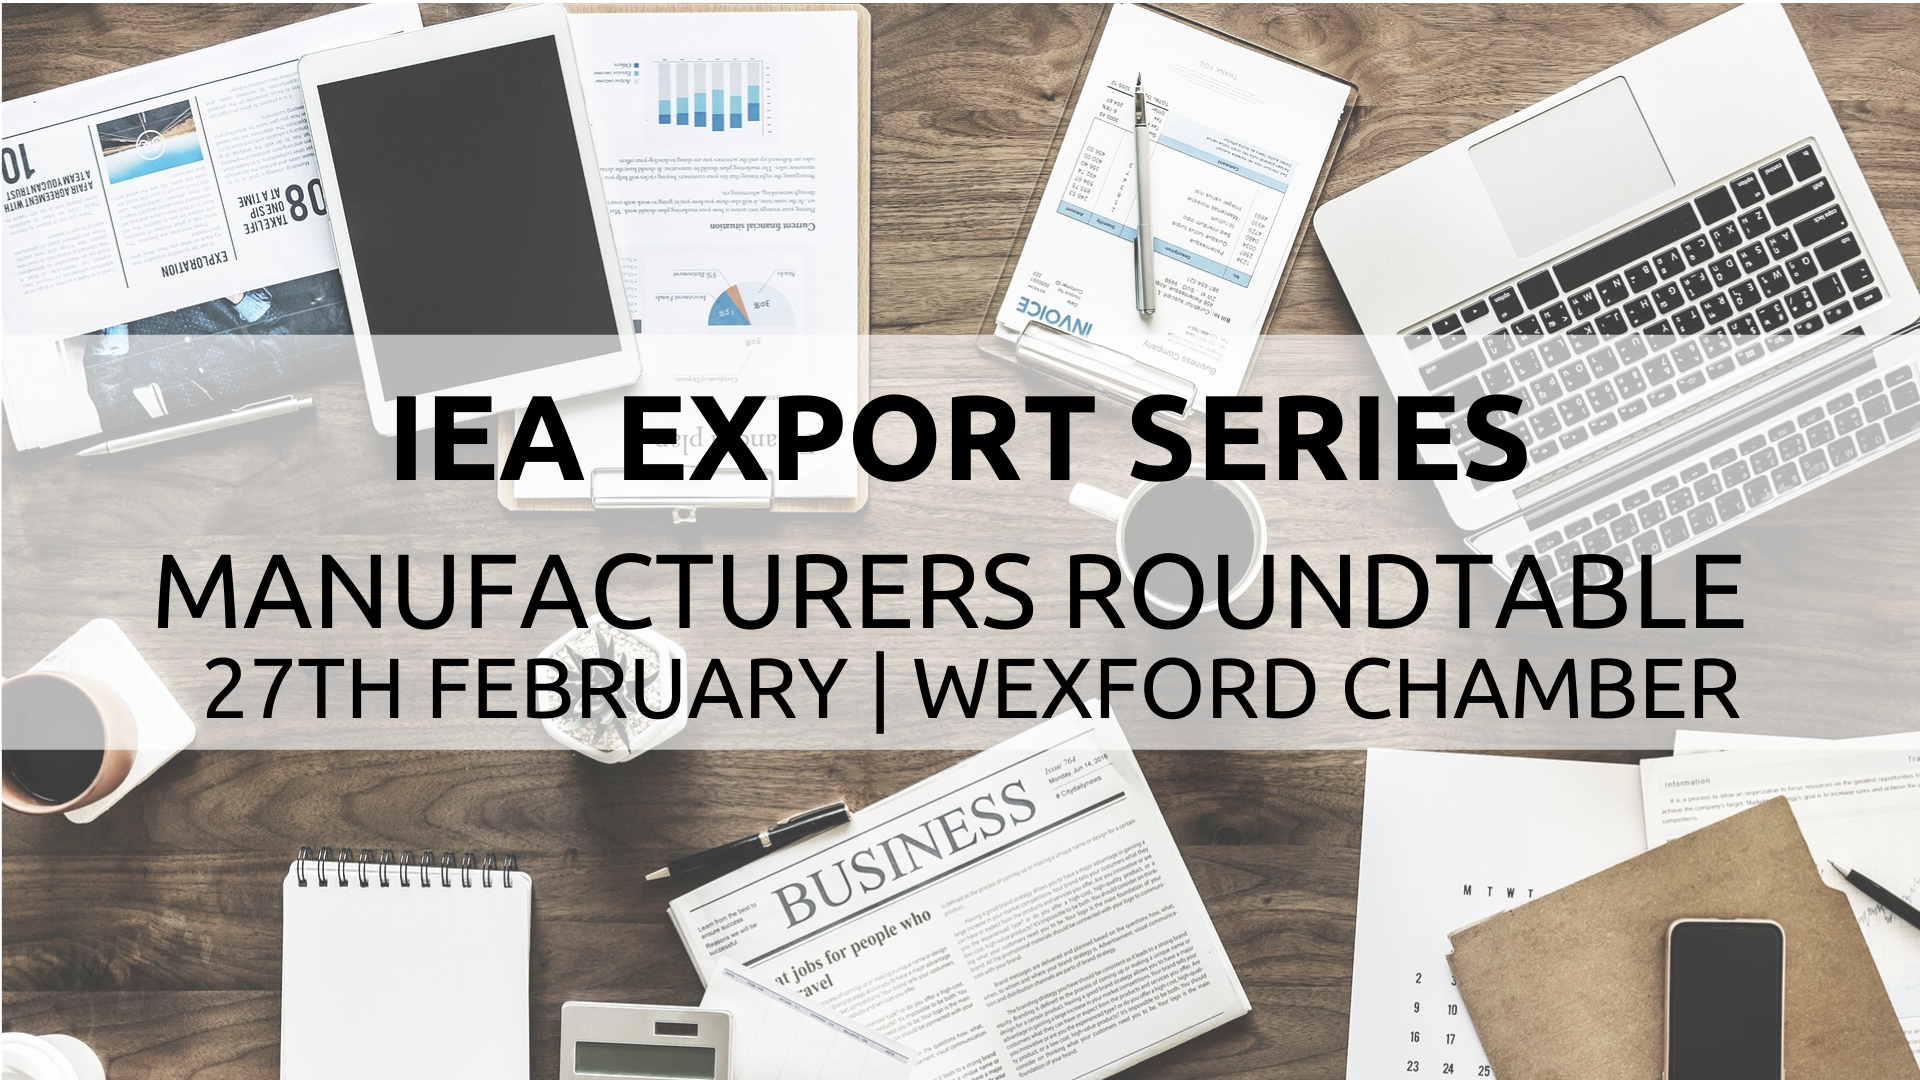 Manufacturers Roundtable – Wexford